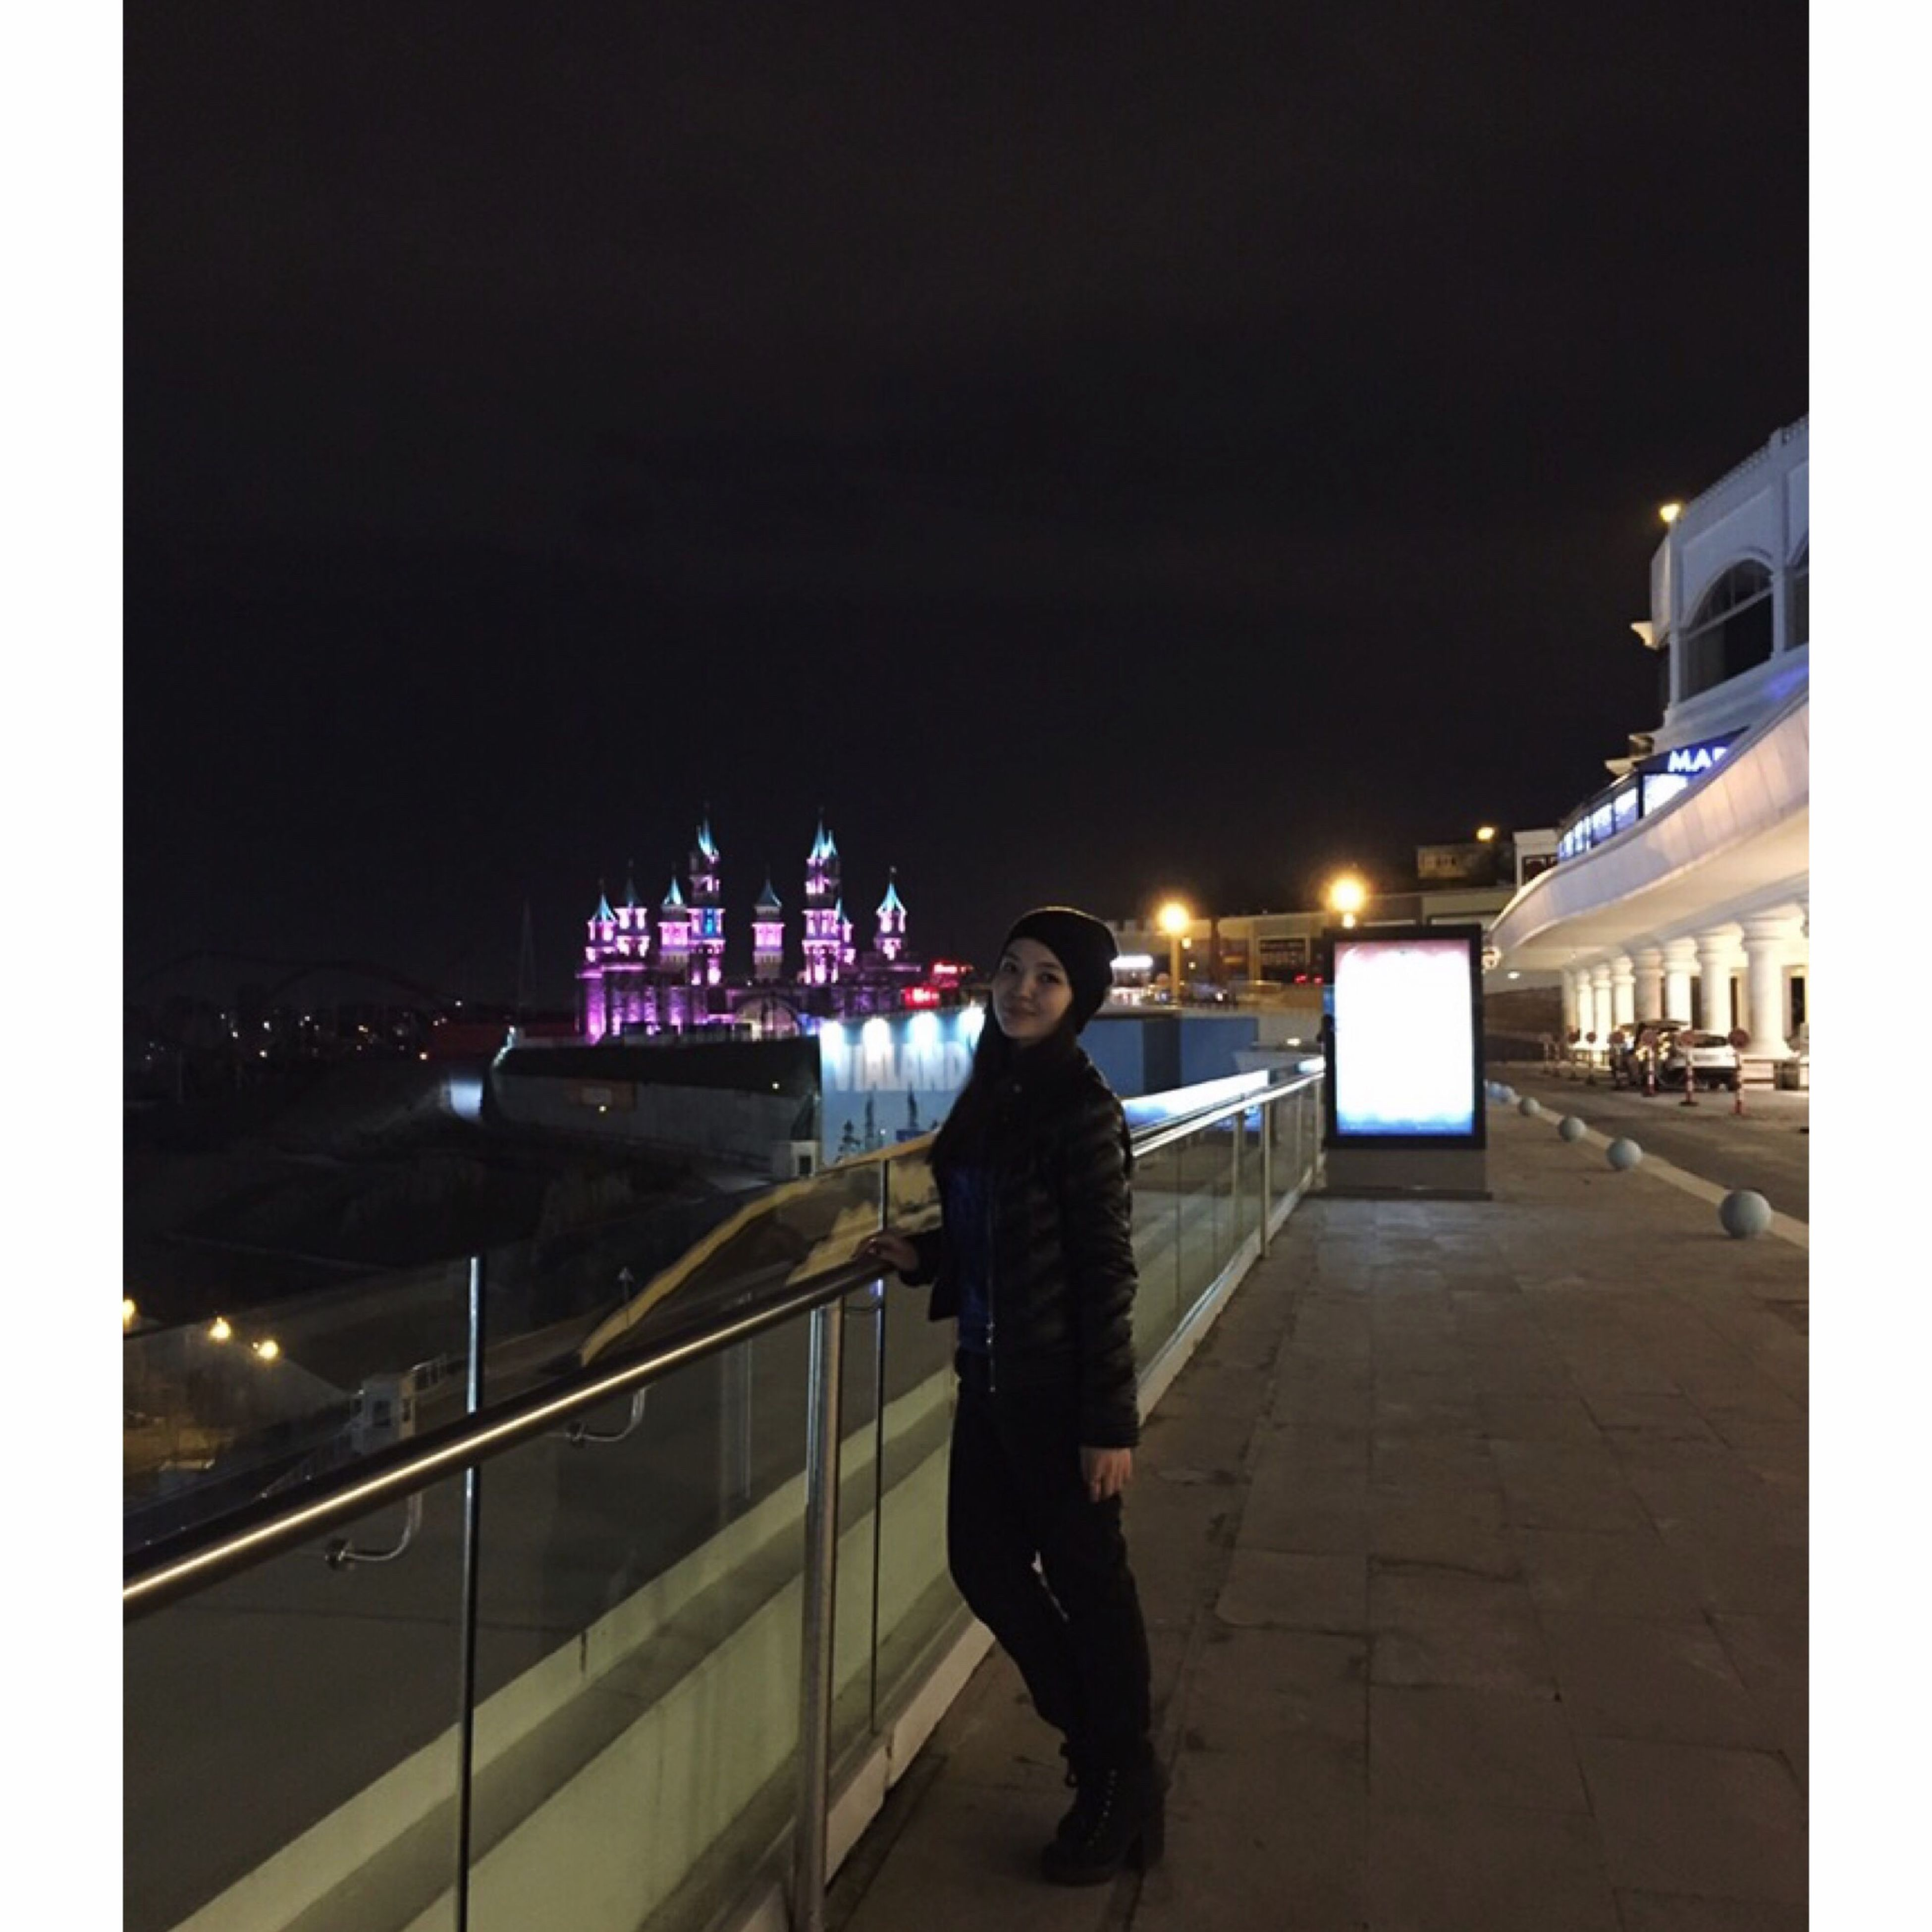 night, illuminated, architecture, building exterior, built structure, lifestyles, standing, leisure activity, rear view, city, full length, men, casual clothing, sky, city life, person, walking, railing